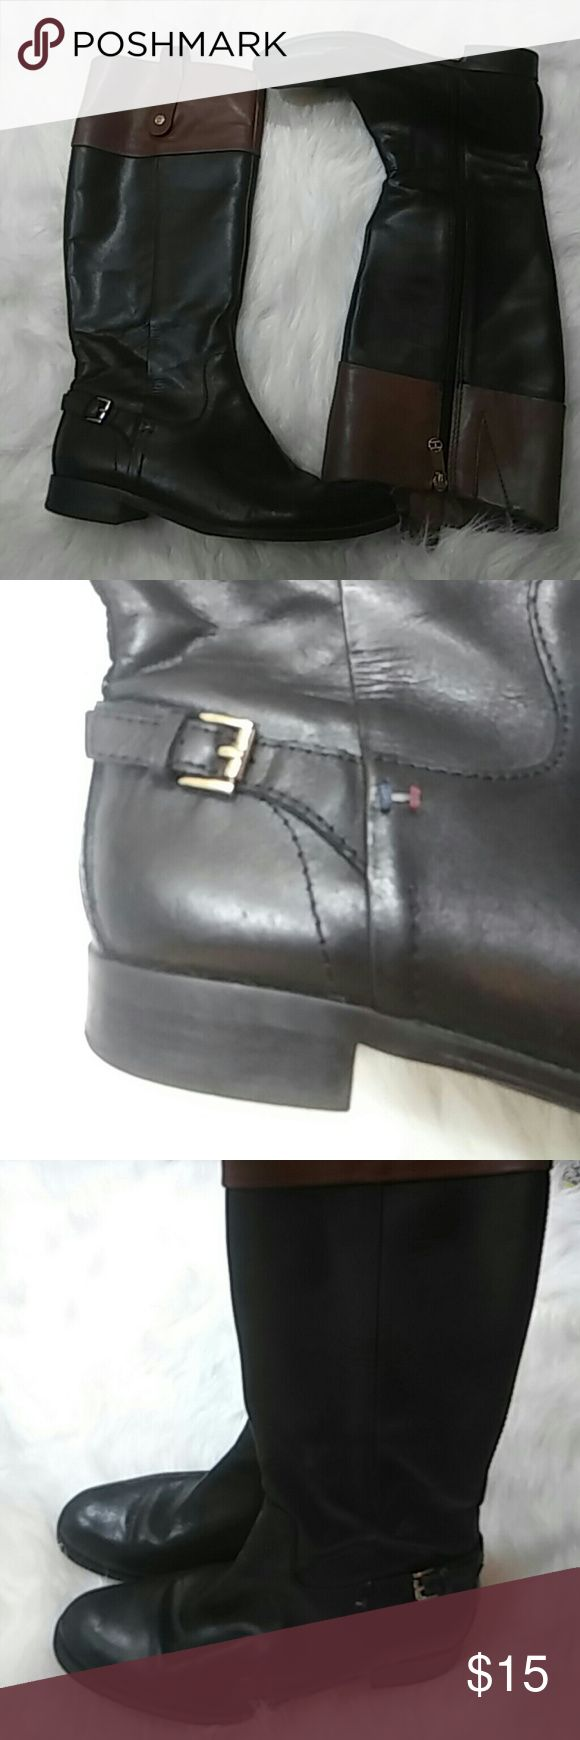 Tommy Hilfiger Boots Pre loved minor sign of wear Tommy Hilfiger Shoes Heeled Boots